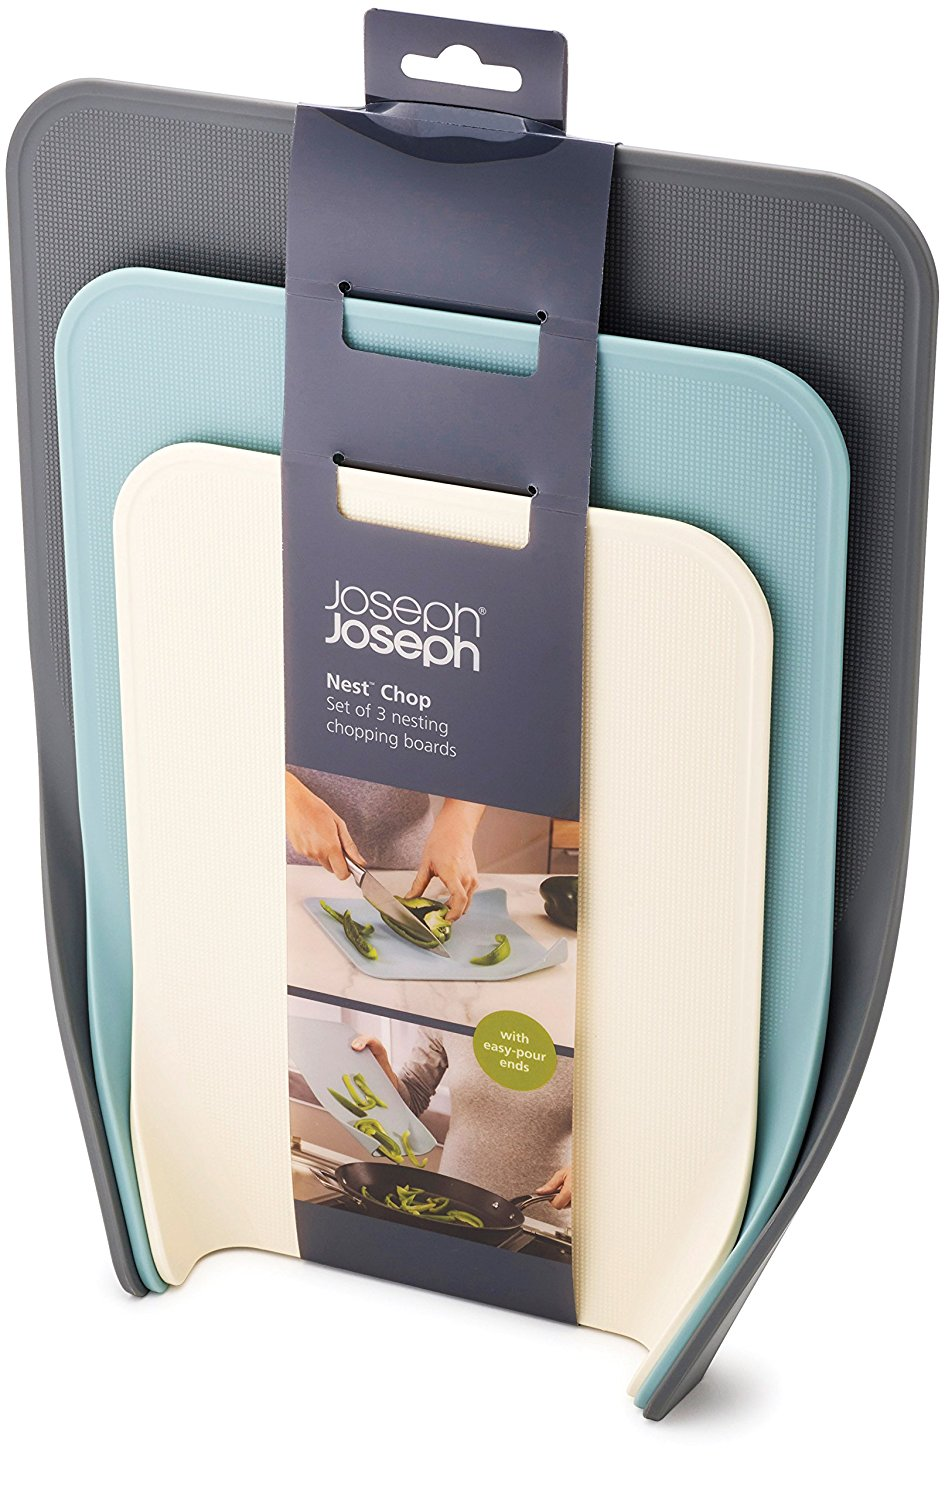 Joseph Joseph 60122 Nest Chop Set of Nesting Plastic Cutting Boards 1